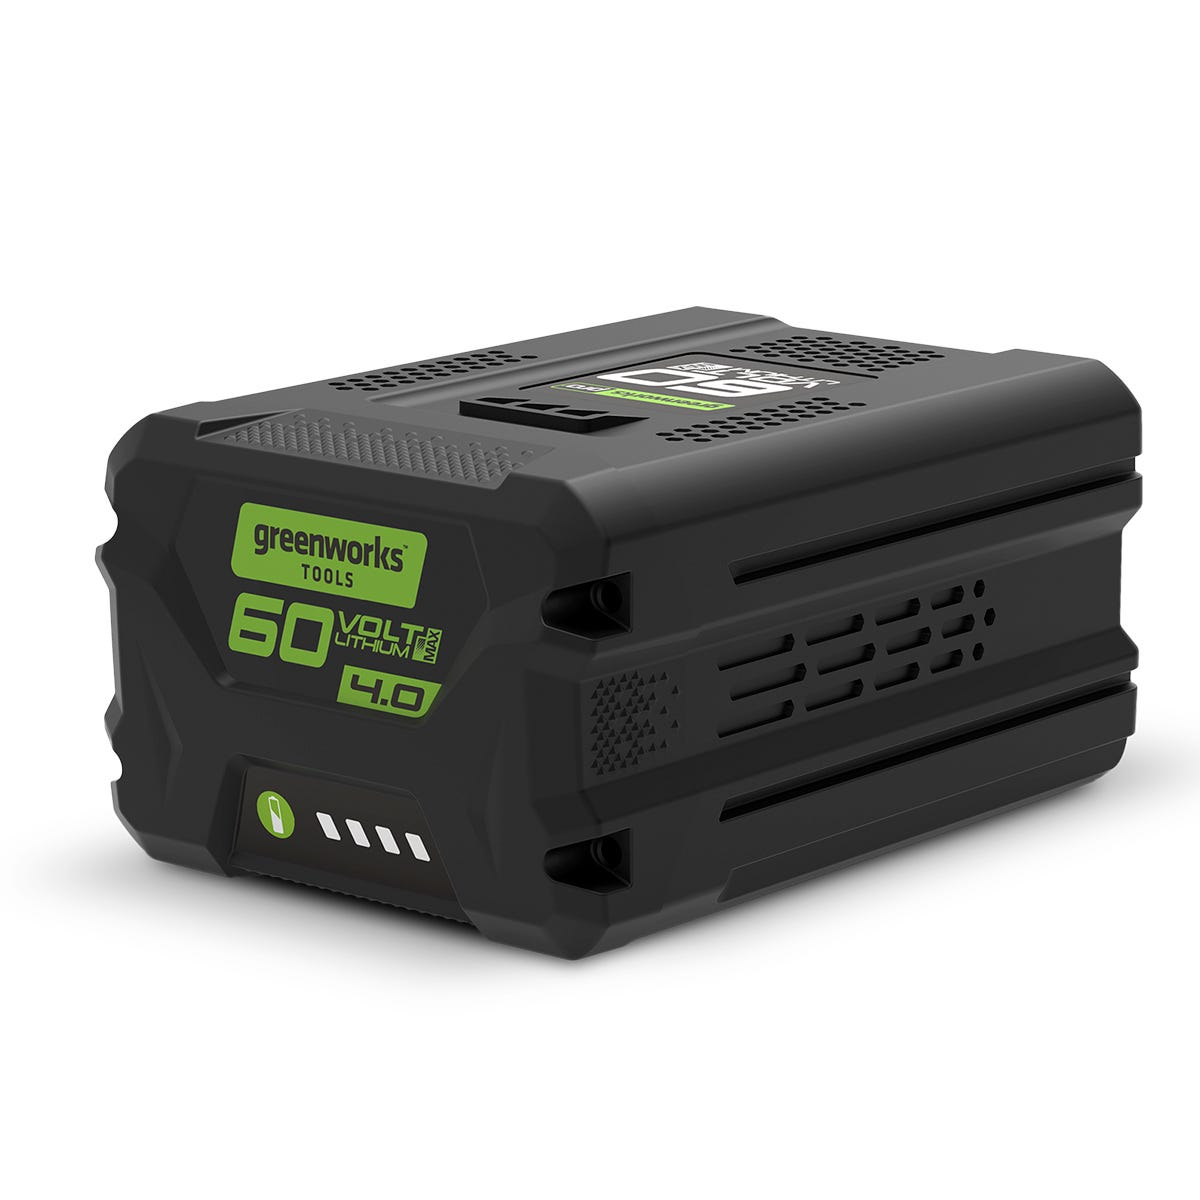 Greenworks 60v 4Ah Battery